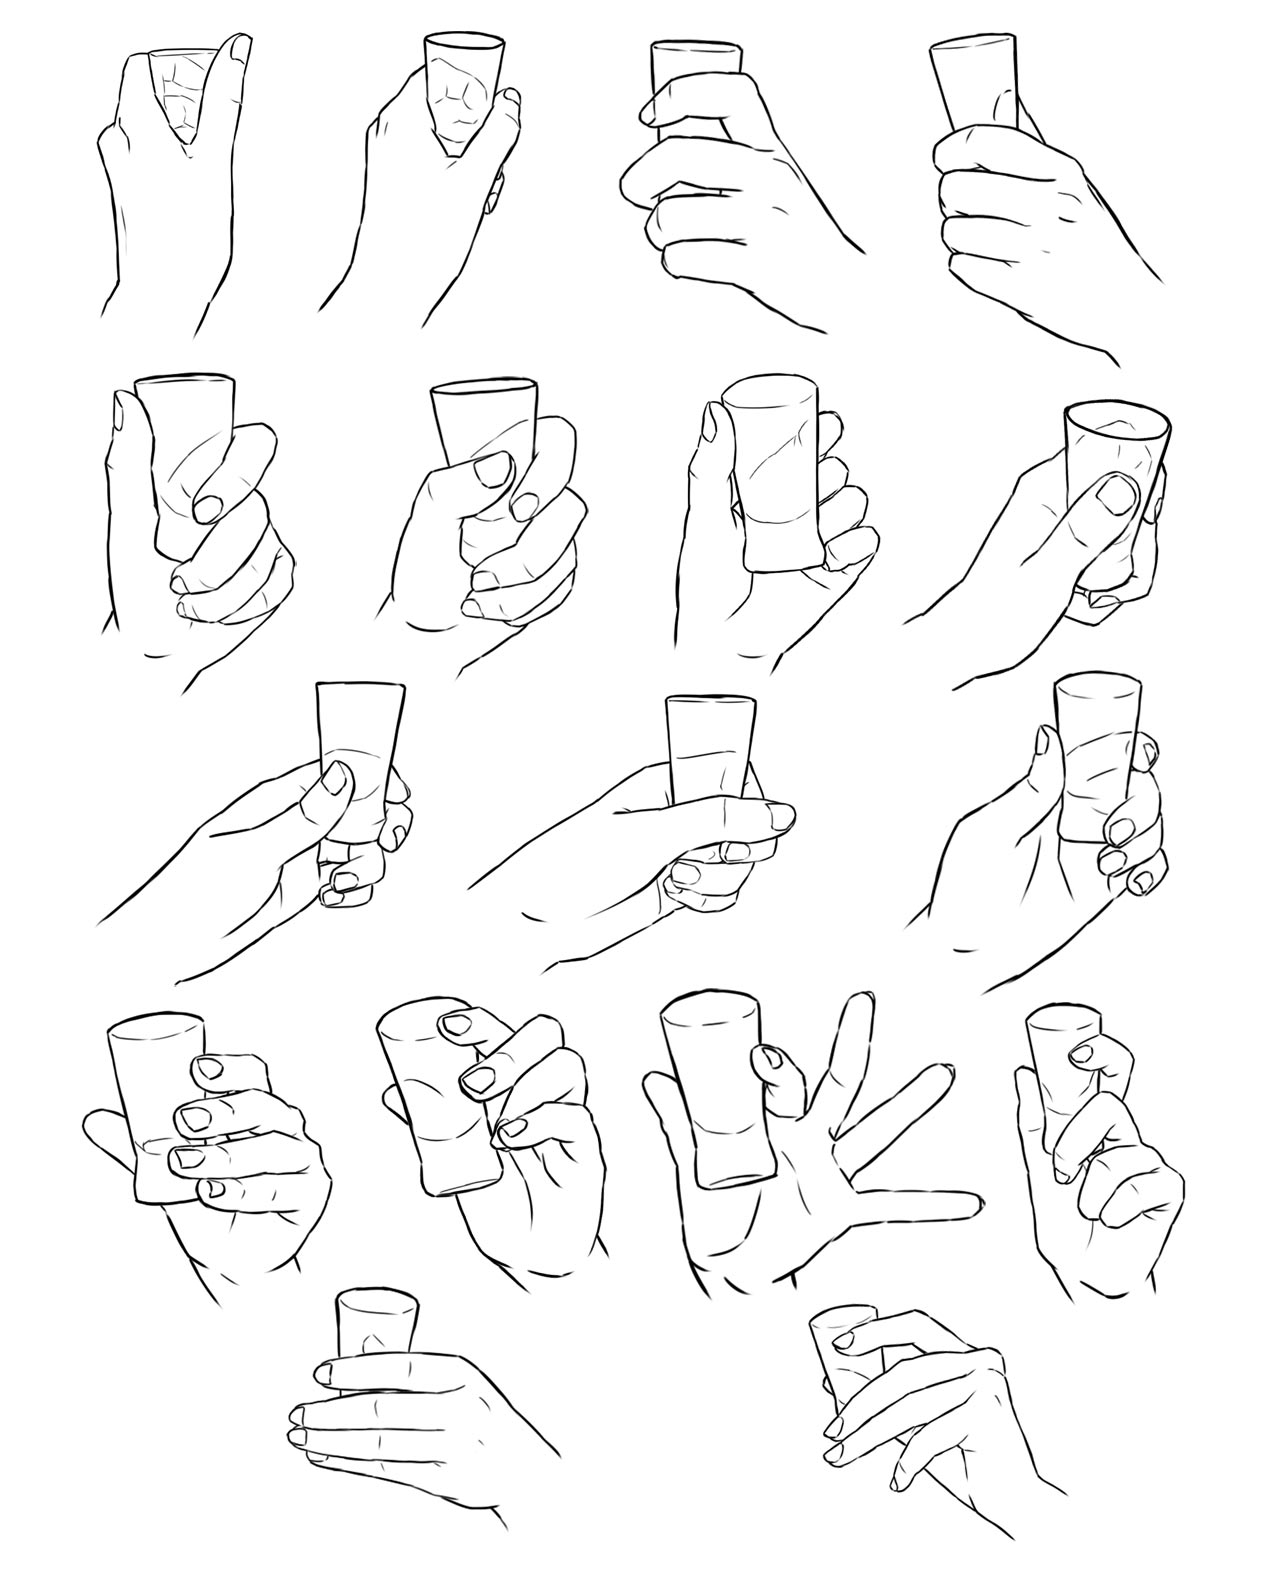 Hand holding glass drawing reference